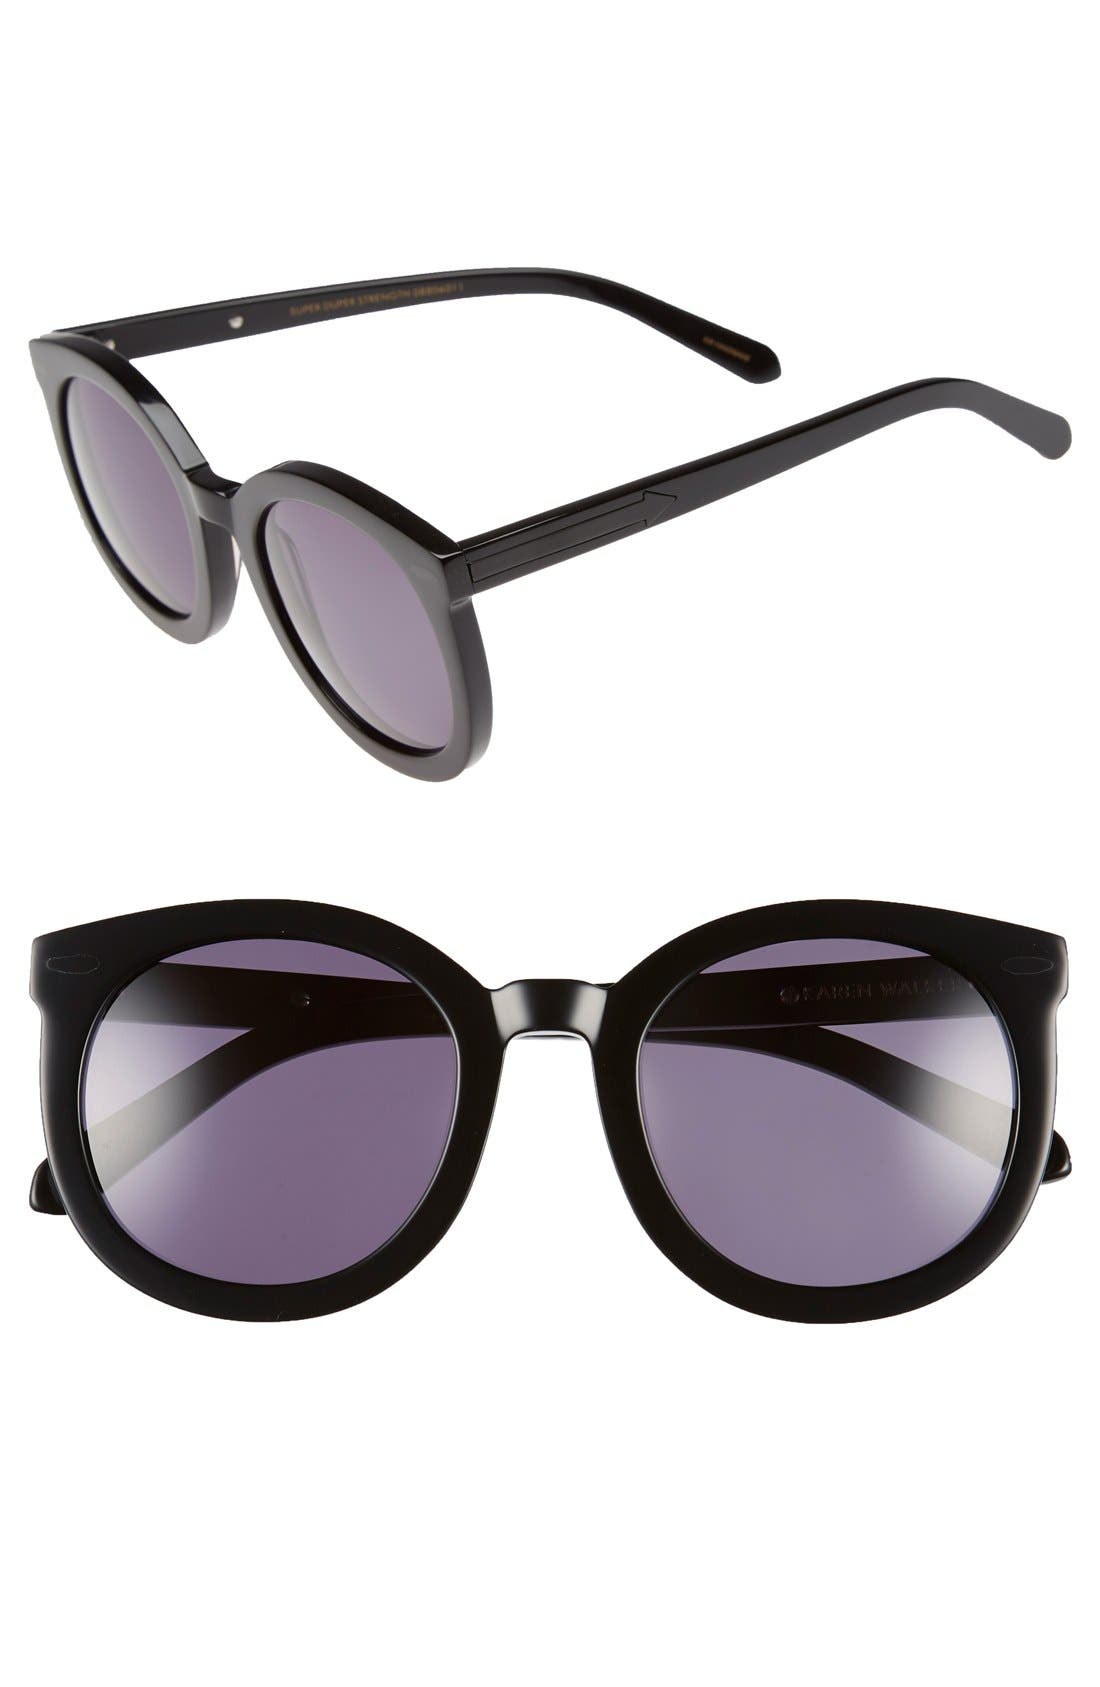 Main Image - Karen Walker Super Duper Strength 55mm Sunglasses